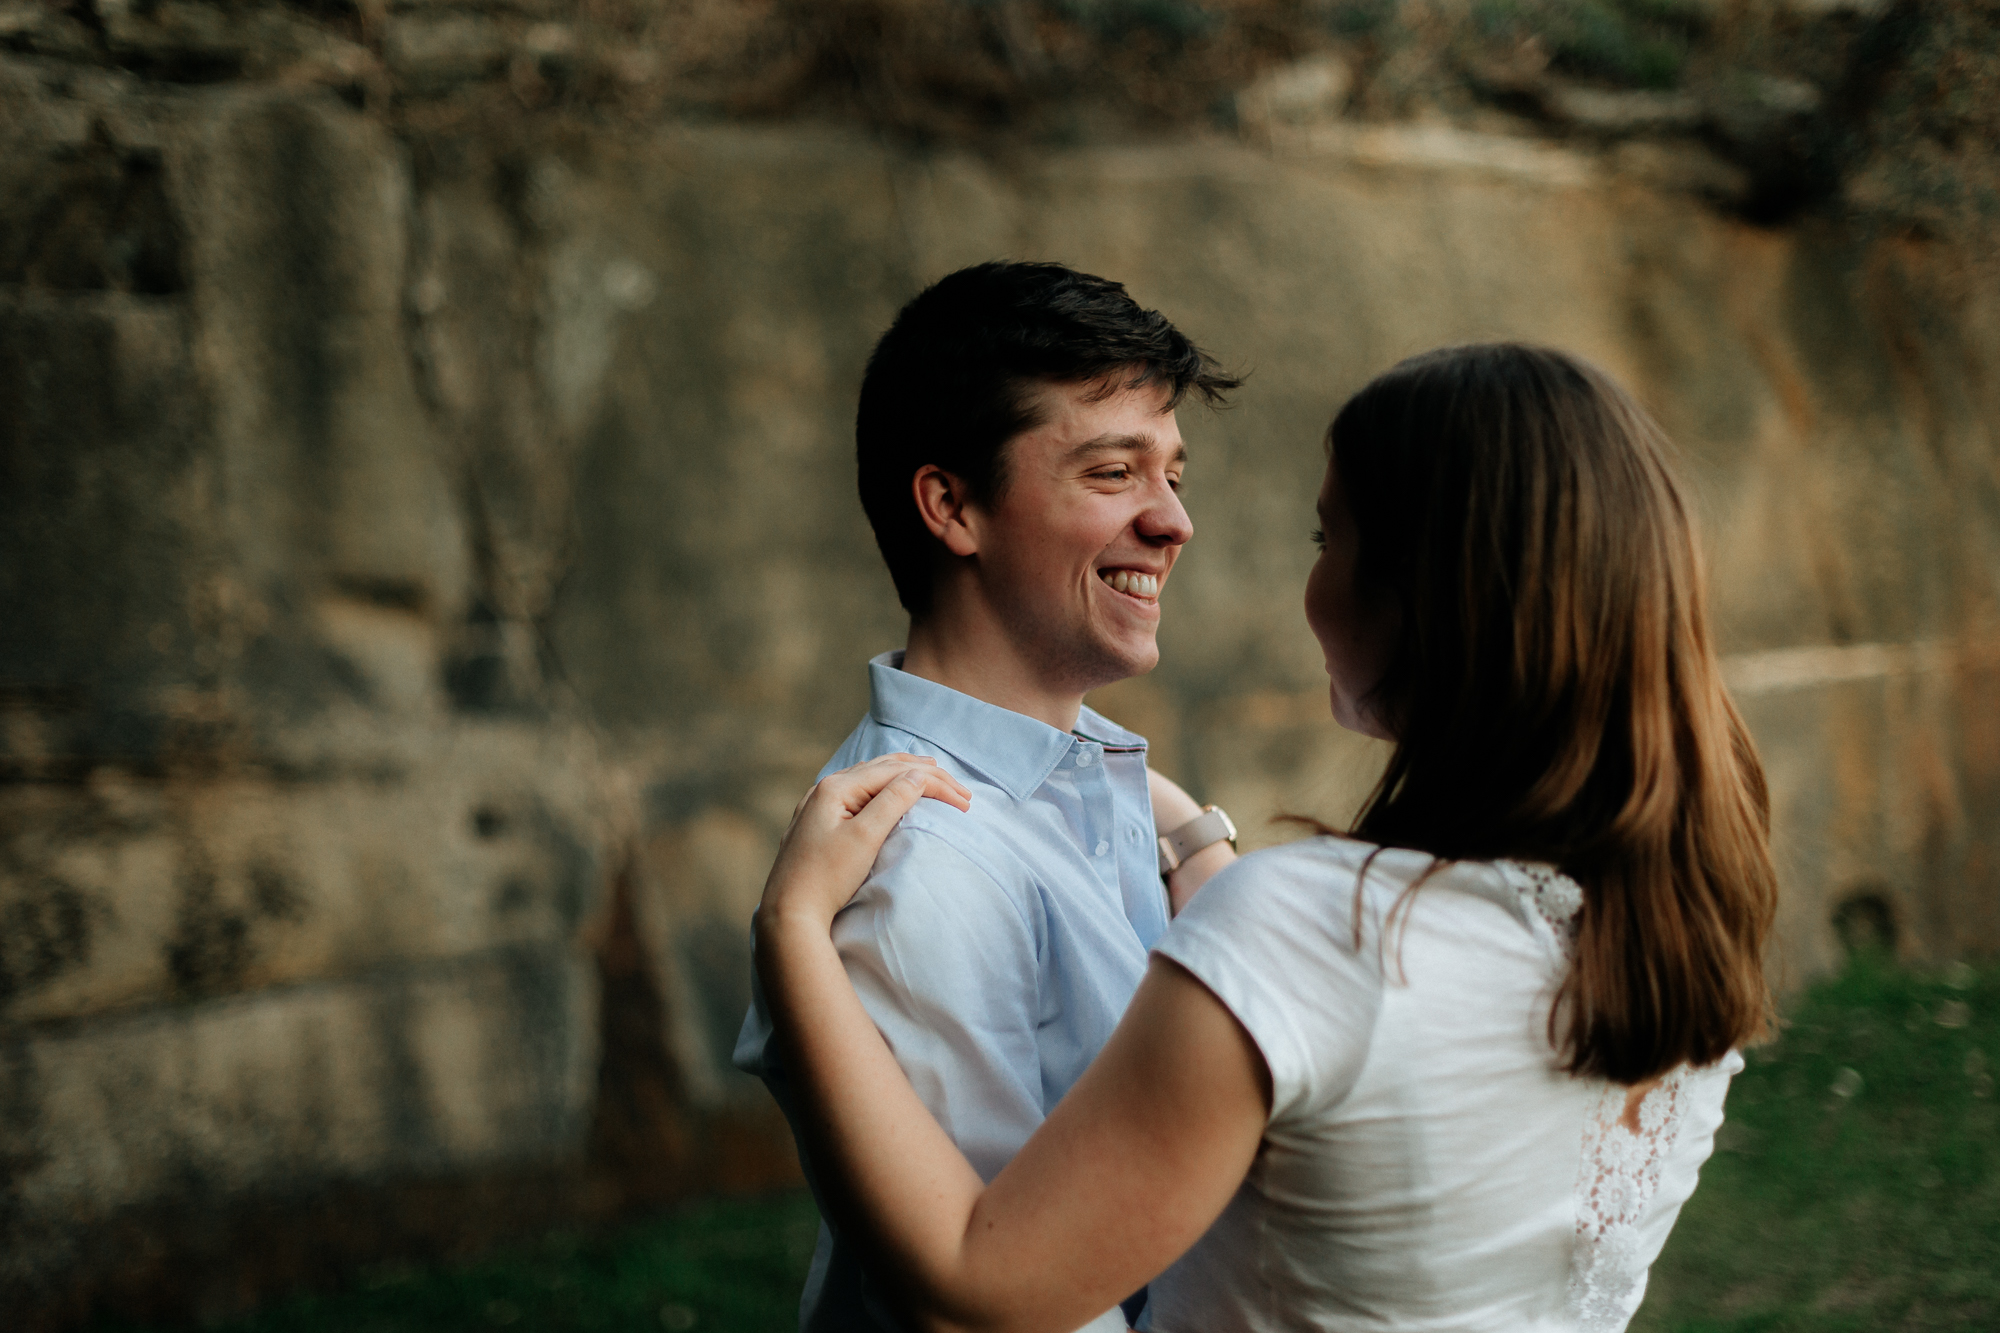 Amanzi and Steven_Engagement_Sydney_Holly Medway Photography-44.JPG